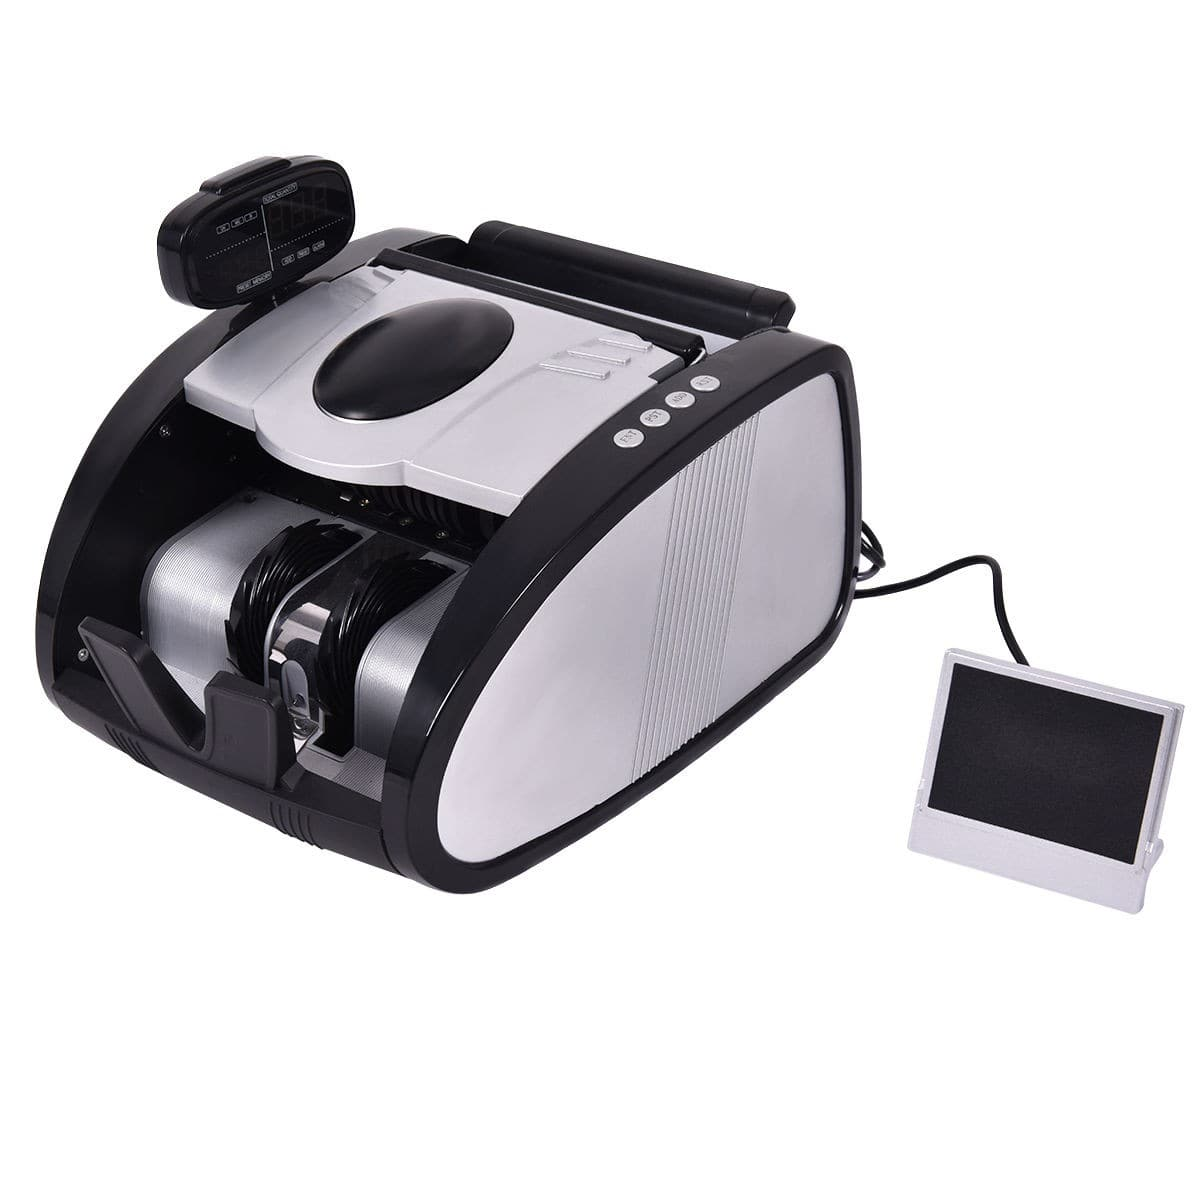 Costway Automatic Cash Money Currency Bill Counter Machine $46.95 + Free Shipping